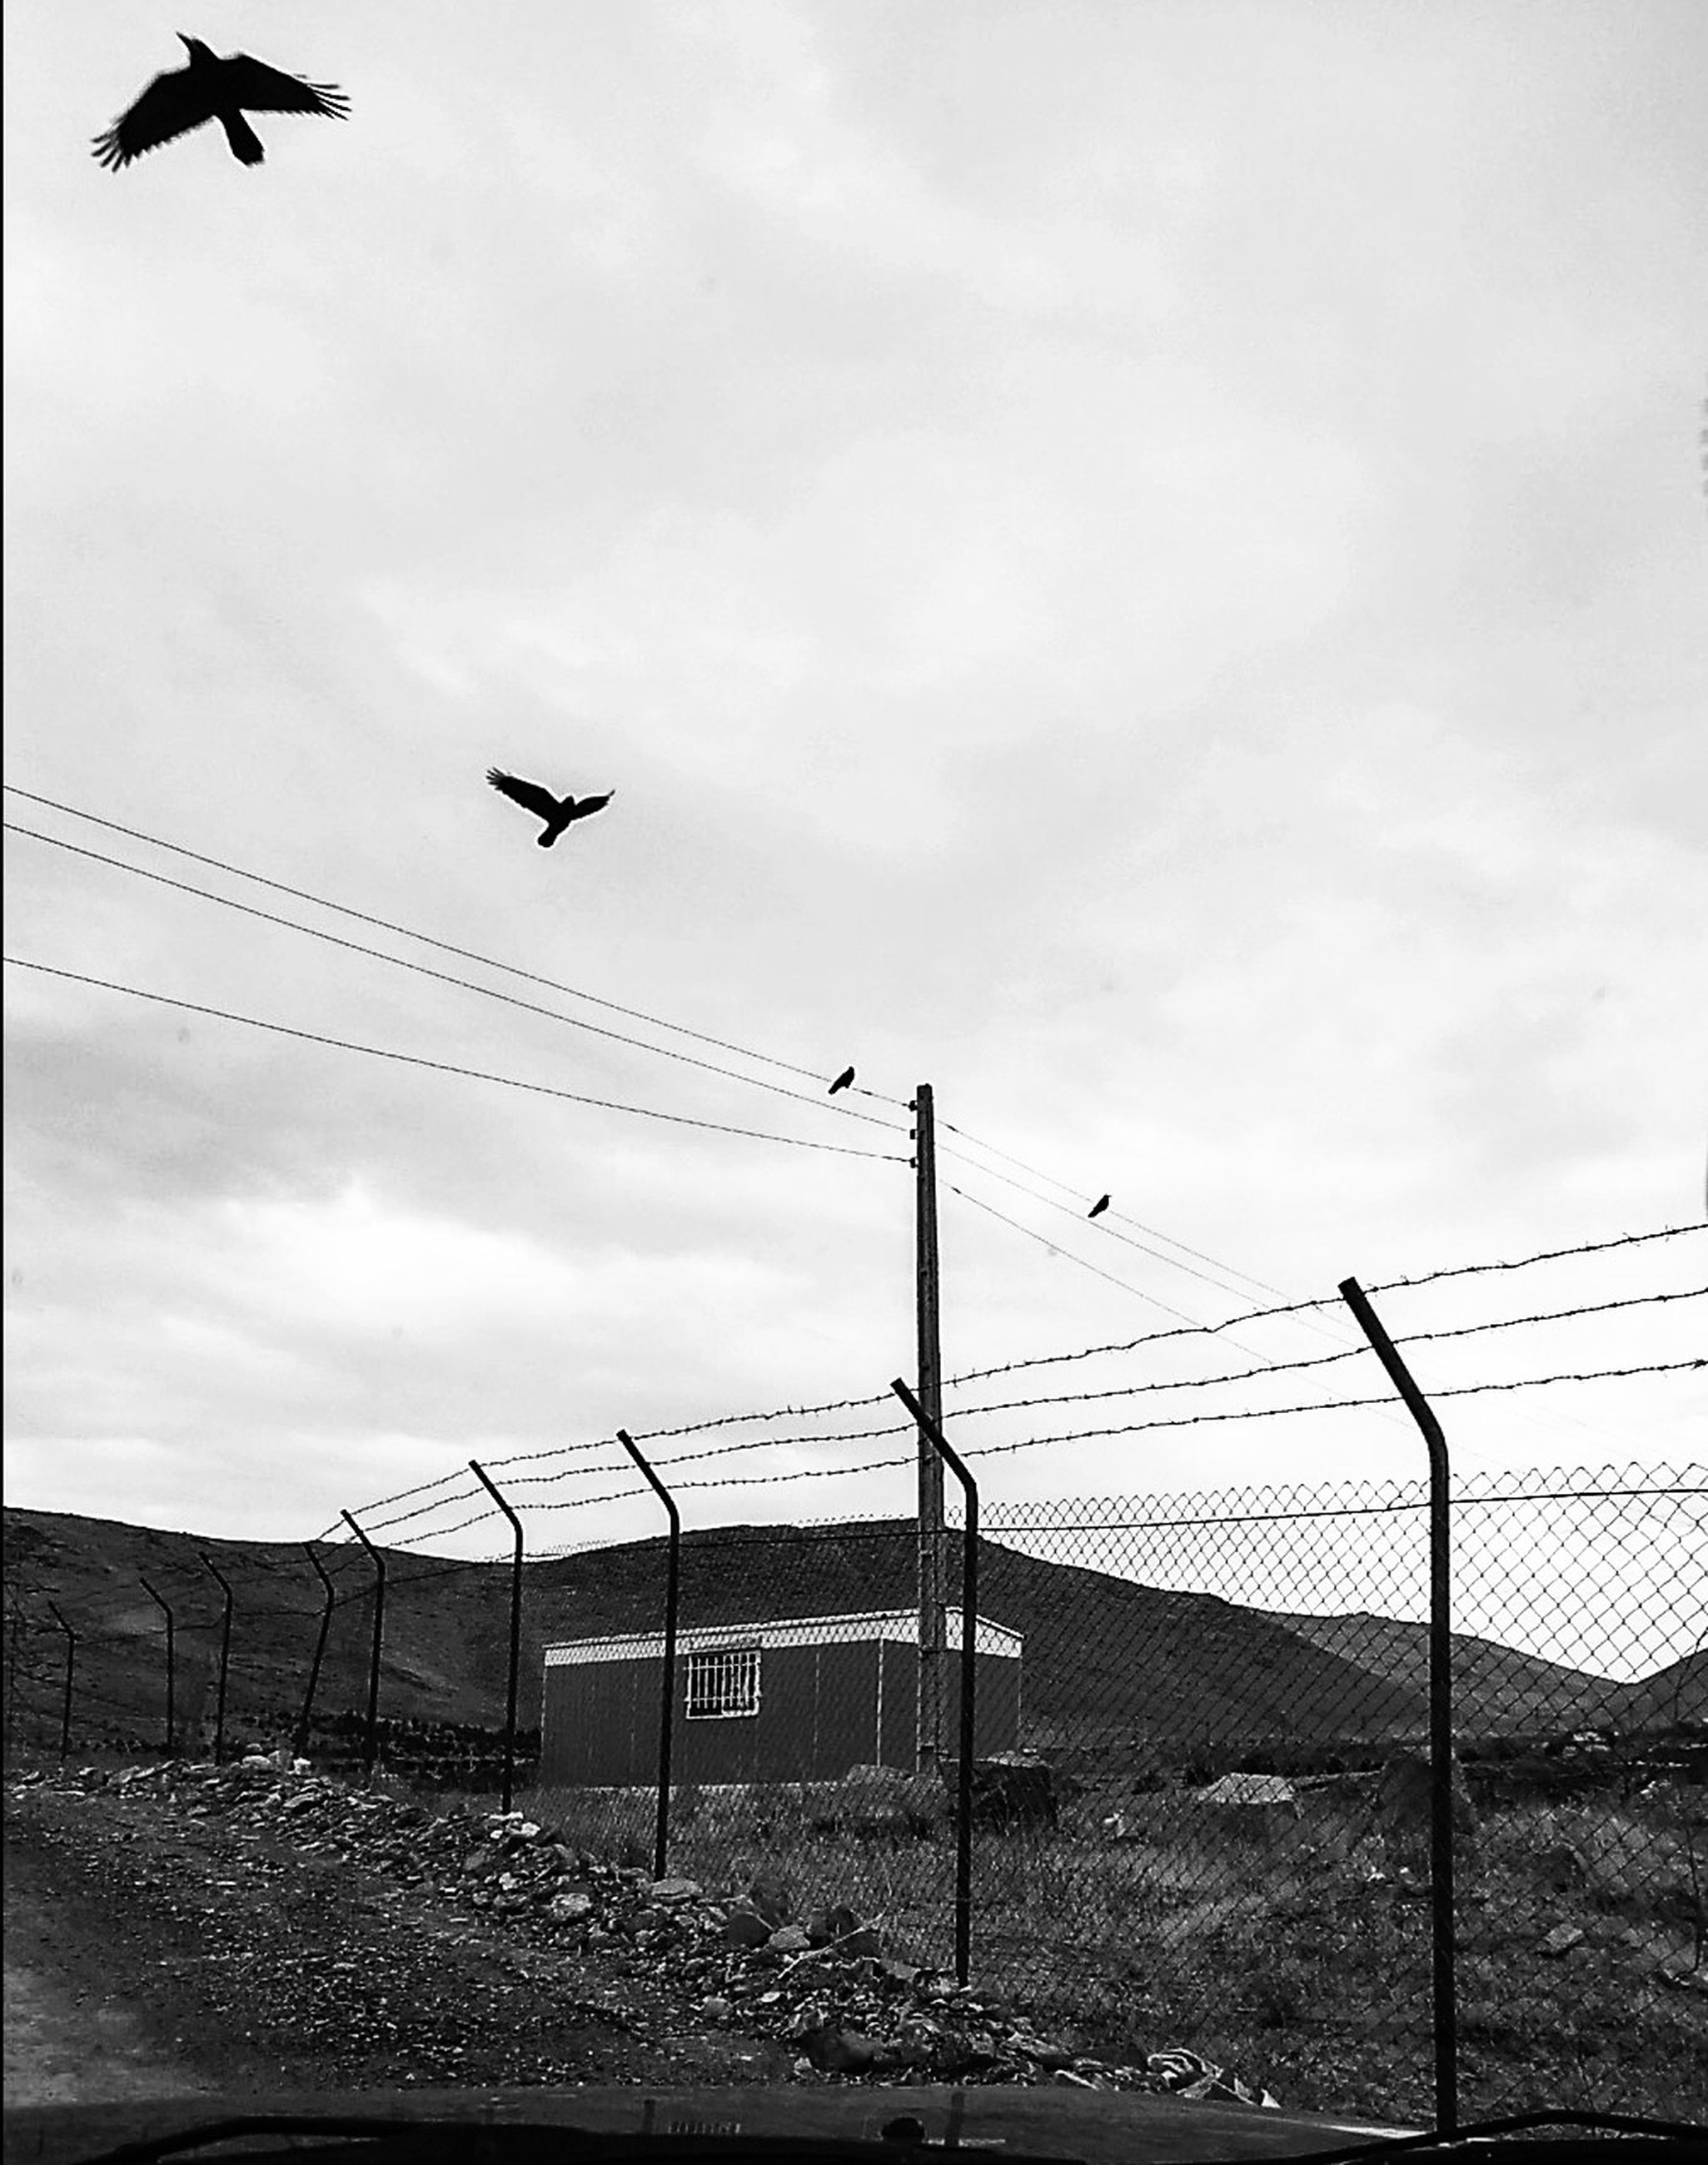 bird, flying, sky, animal themes, cloud - sky, animals in the wild, cable, outdoors, no people, day, animal wildlife, nature, built structure, building exterior, spread wings